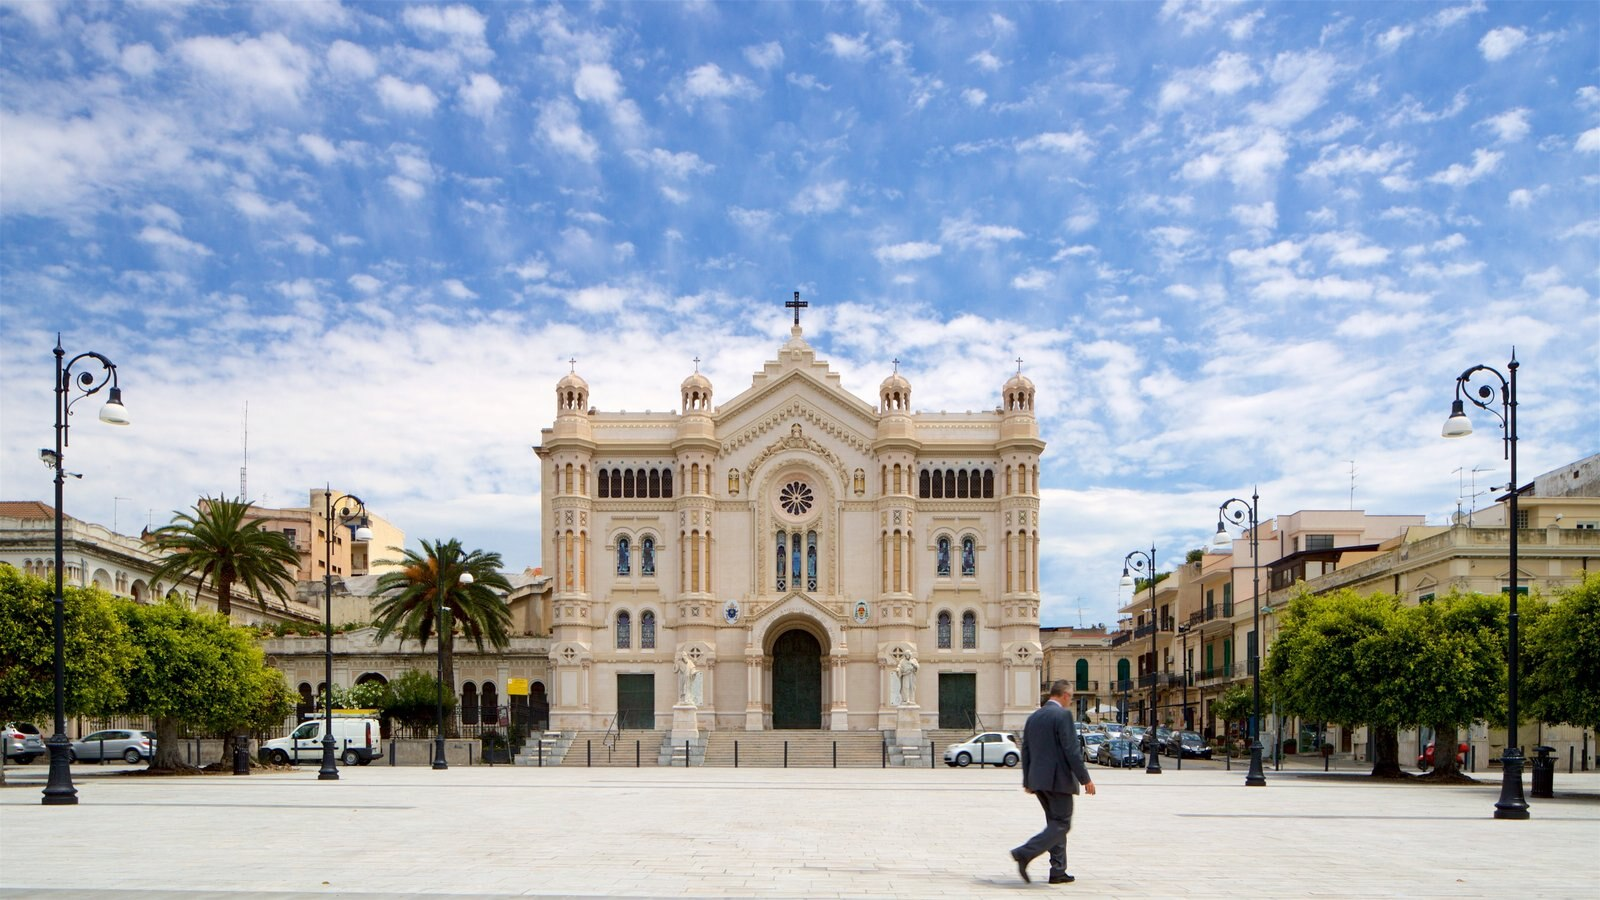 Cathedral of Calabria